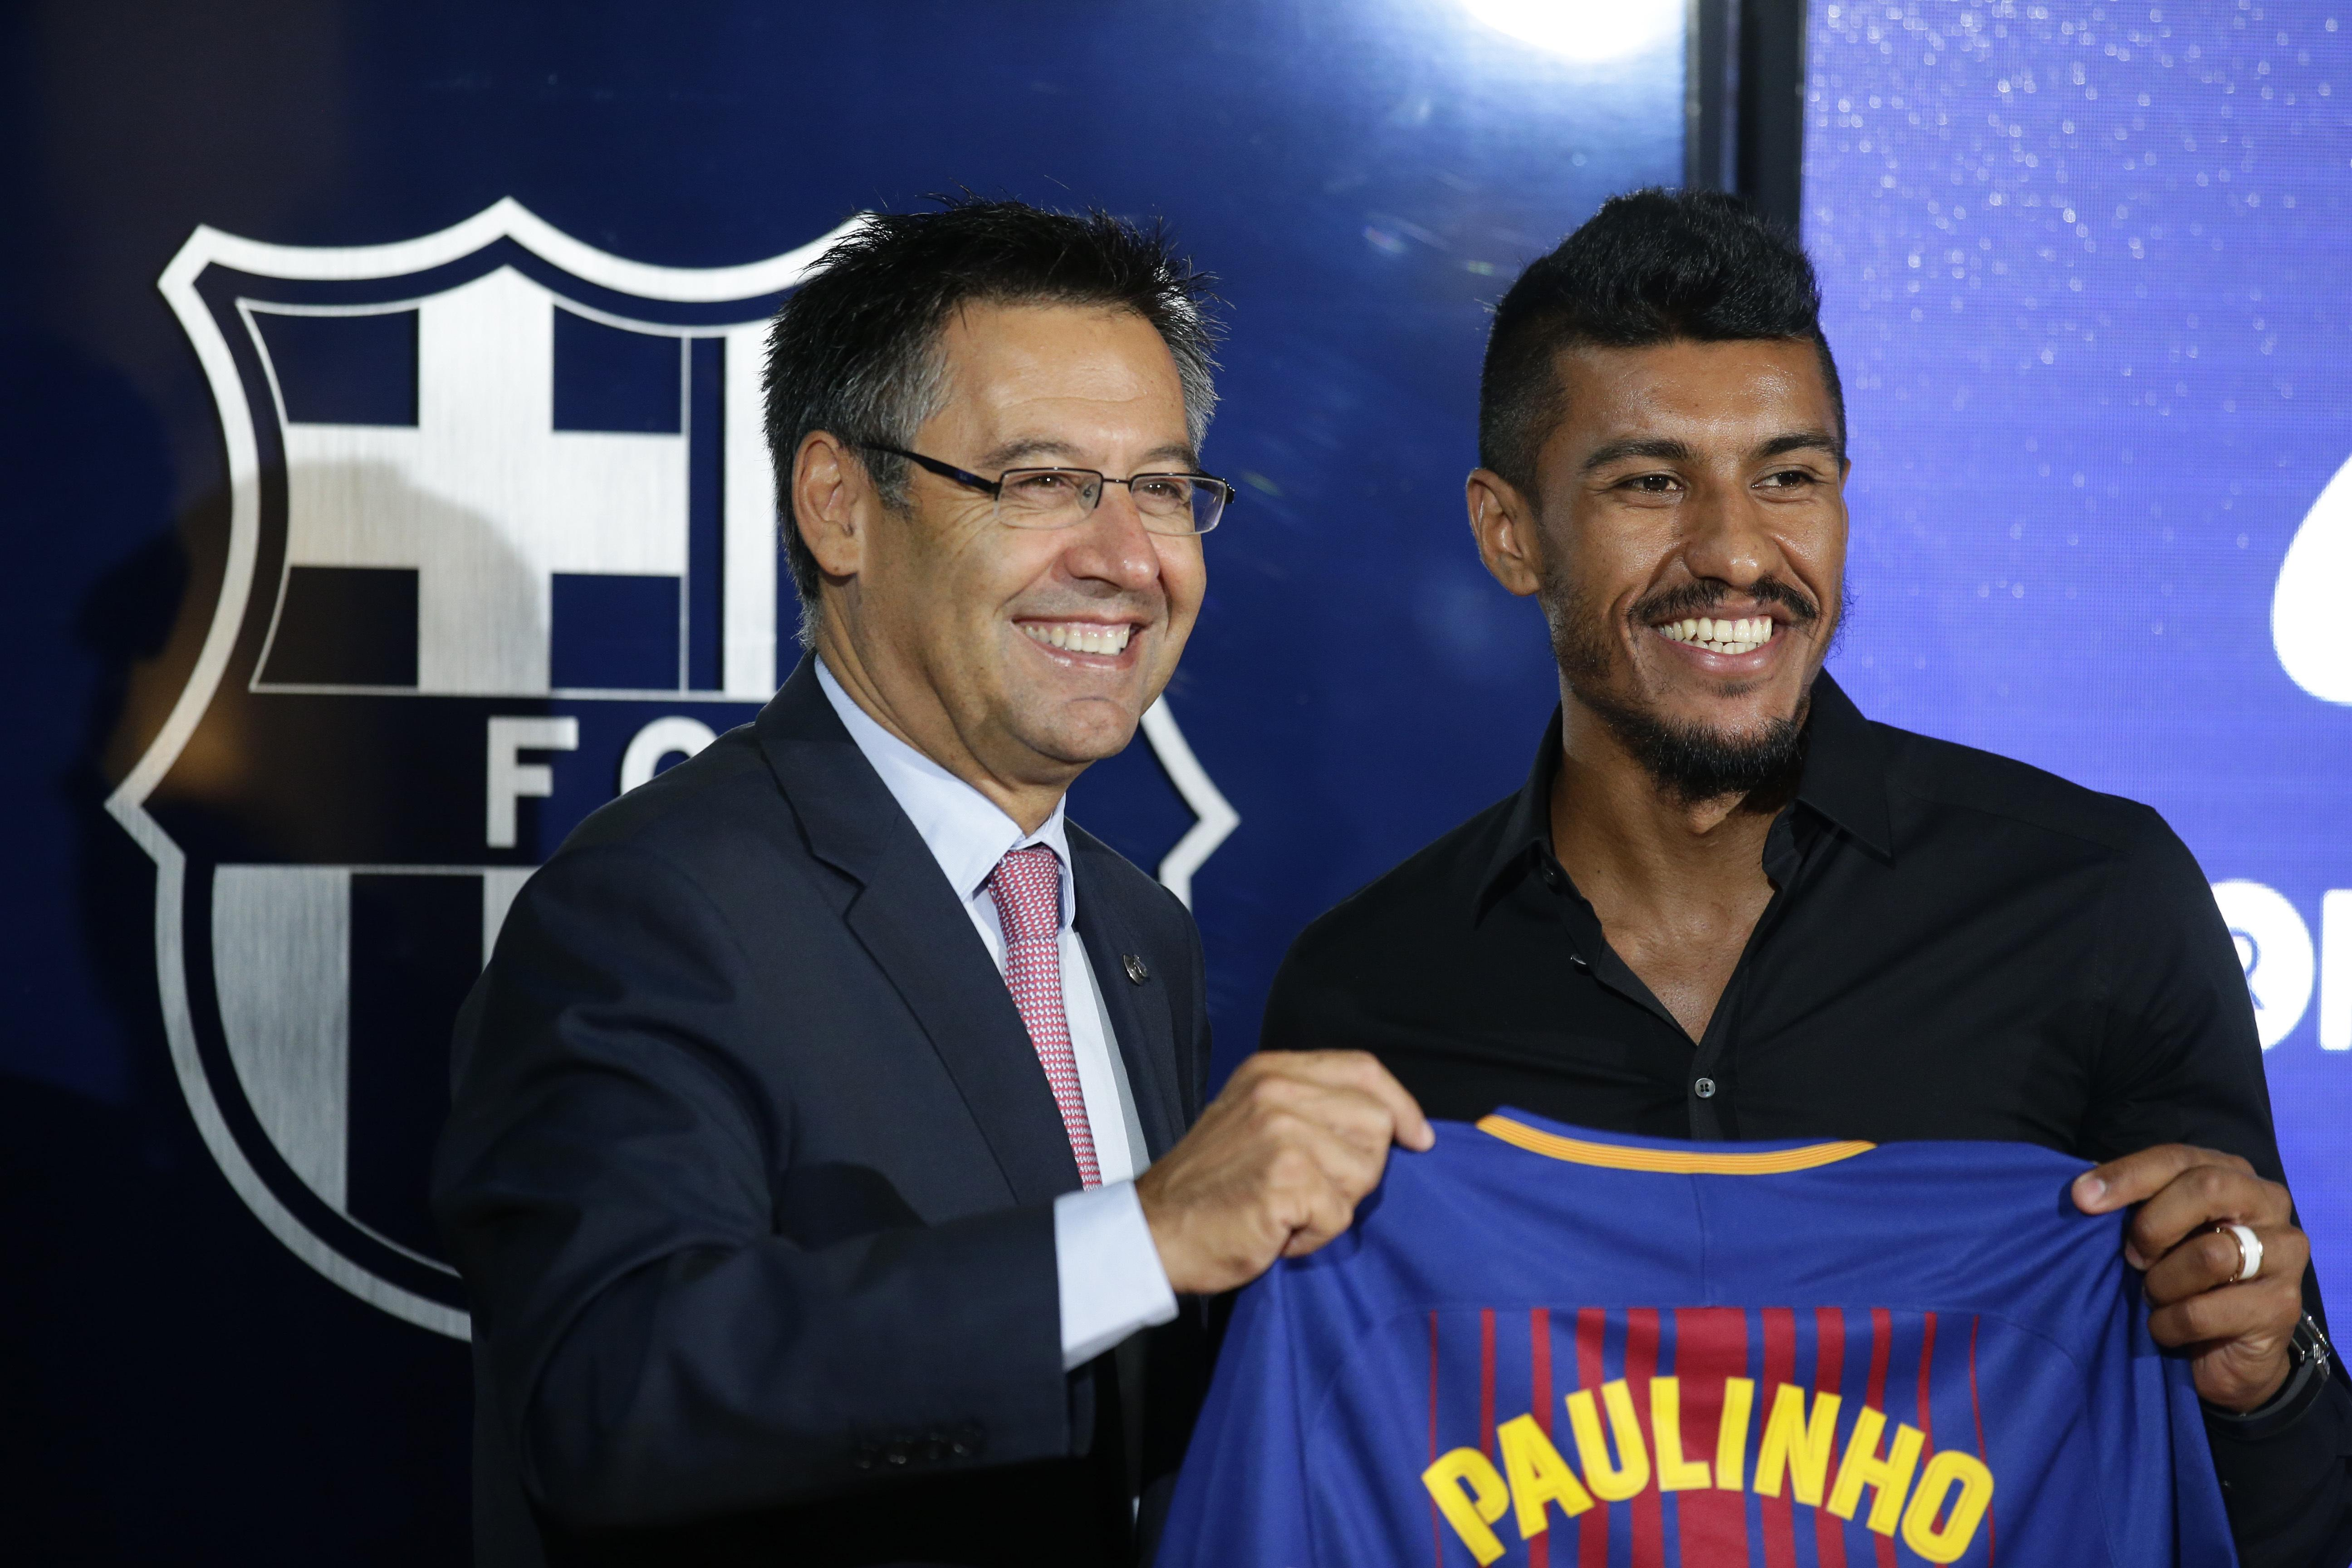 The Brazilian was bizarrely snapped up by Barcelona